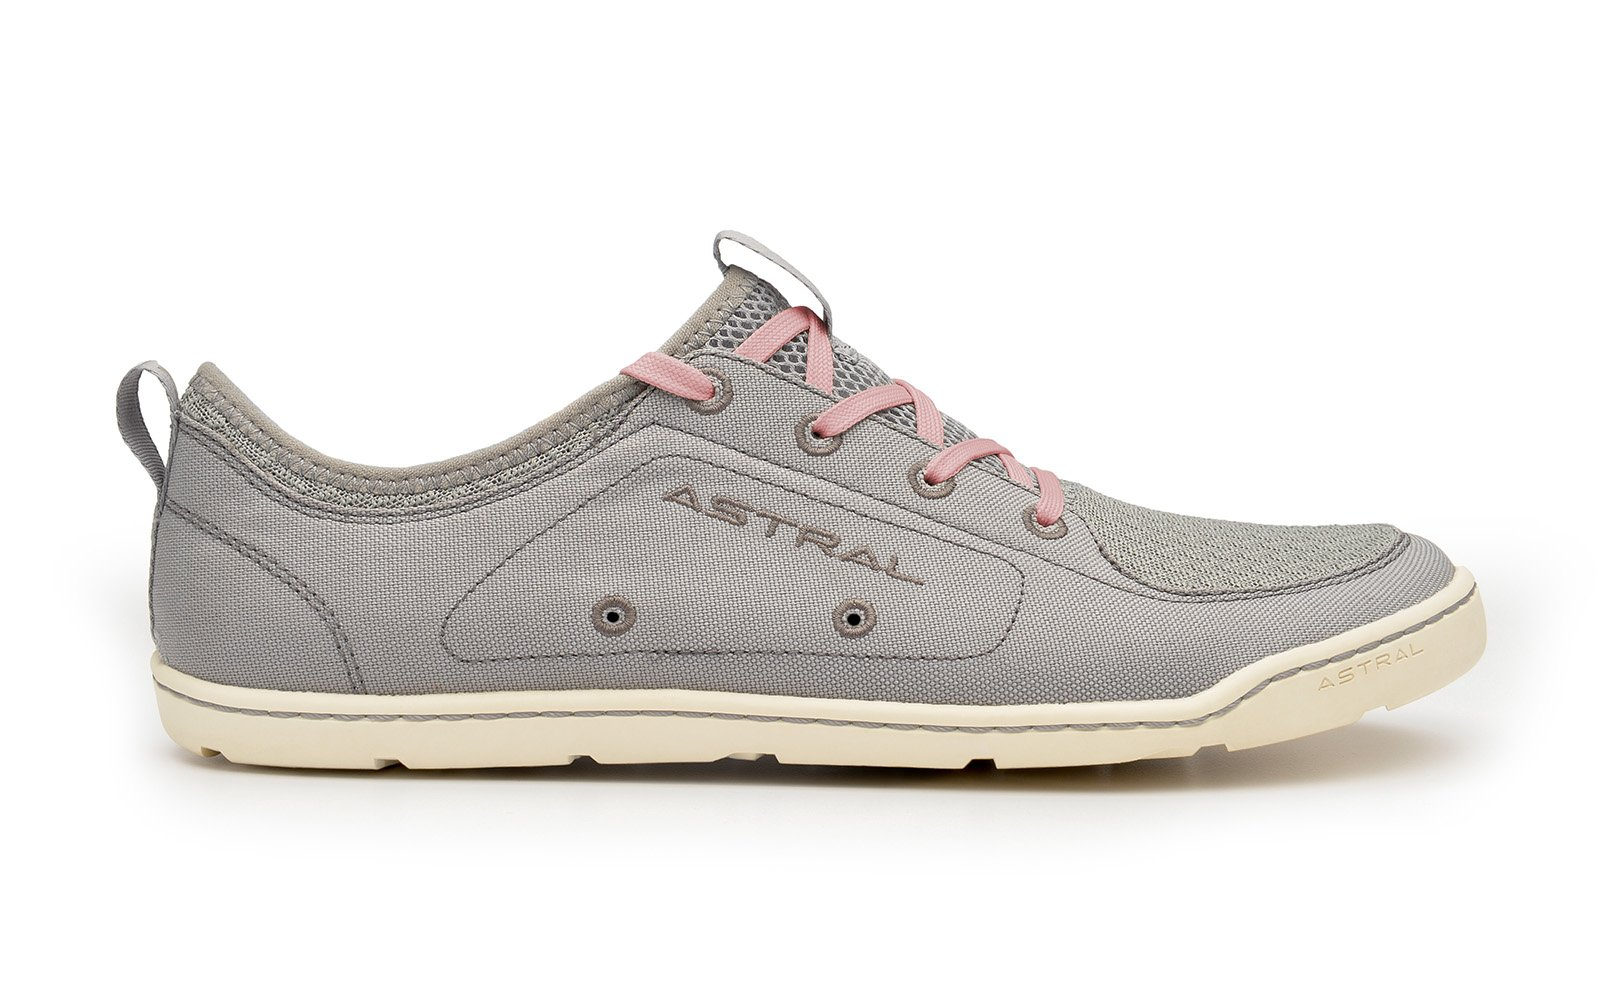 Astral Women's Loyak Shoe